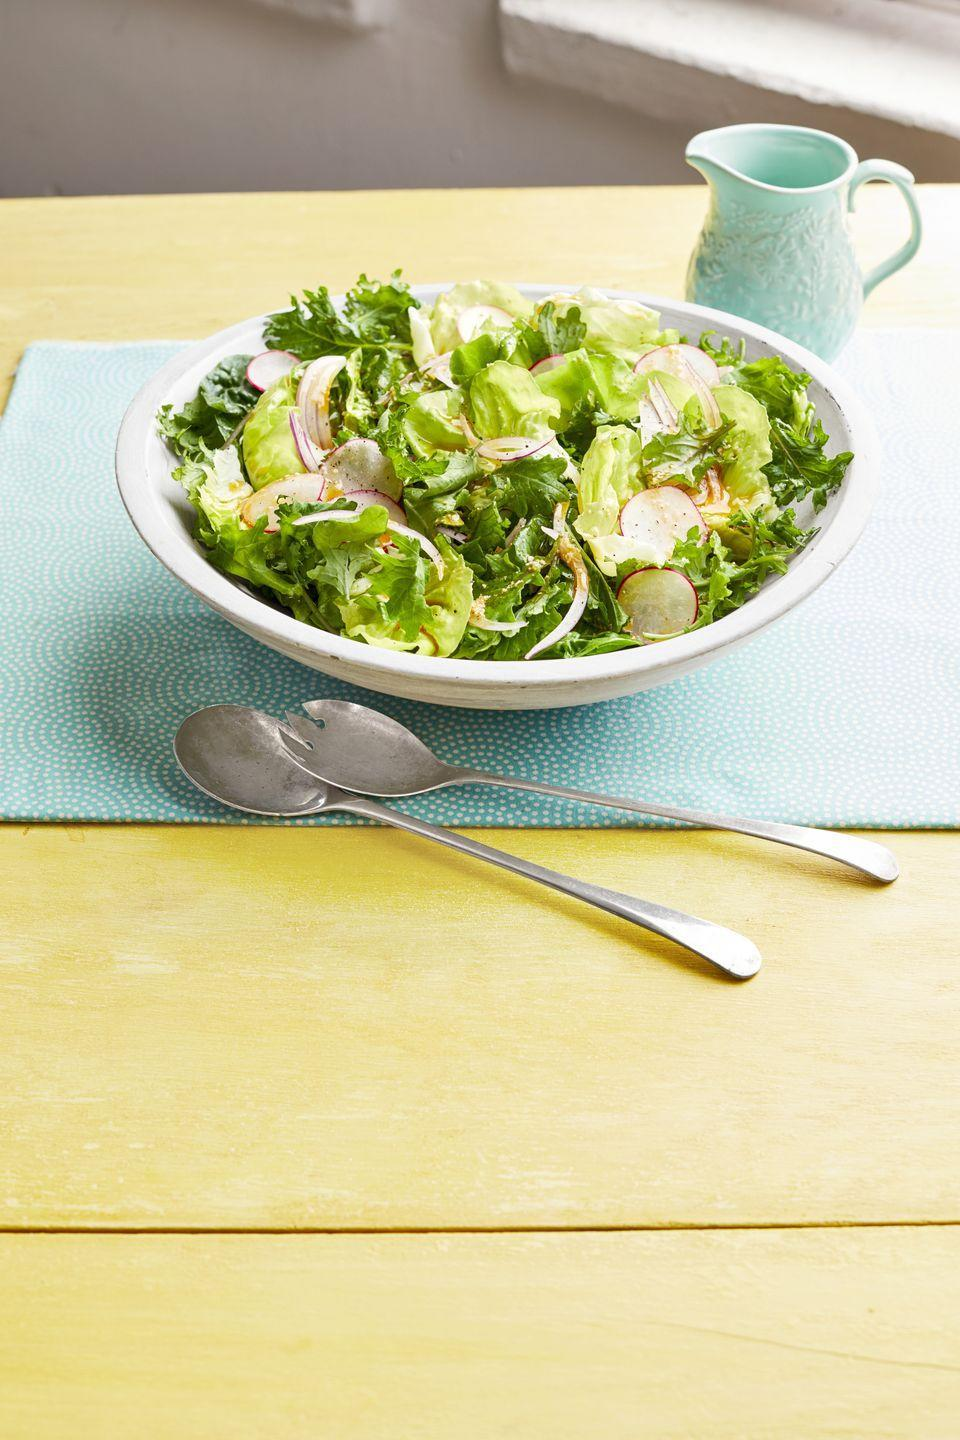 """<p>Ree Drummond has been making this dressing recipe from her Aunt Trish for years. It tastes great on any salad!</p><p><strong><a href=""""https://www.thepioneerwoman.com/food-cooking/recipes/a32252420/spring-salad-with-radishes/"""" rel=""""nofollow noopener"""" target=""""_blank"""" data-ylk=""""slk:Get the recipe."""" class=""""link rapid-noclick-resp"""">Get the recipe. </a></strong></p><p><a class=""""link rapid-noclick-resp"""" href=""""https://go.redirectingat.com?id=74968X1596630&url=https%3A%2F%2Fwww.walmart.com%2Fsearch%2F%3Fquery%3Dpioneer%2Bwoman%2Bserving%2Bplates&sref=https%3A%2F%2Fwww.thepioneerwoman.com%2Ffood-cooking%2Fmeals-menus%2Fg35514088%2Fbest-side-dishes-for-ham%2F"""" rel=""""nofollow noopener"""" target=""""_blank"""" data-ylk=""""slk:SHOP SERVING PLATES"""">SHOP SERVING PLATES</a></p>"""